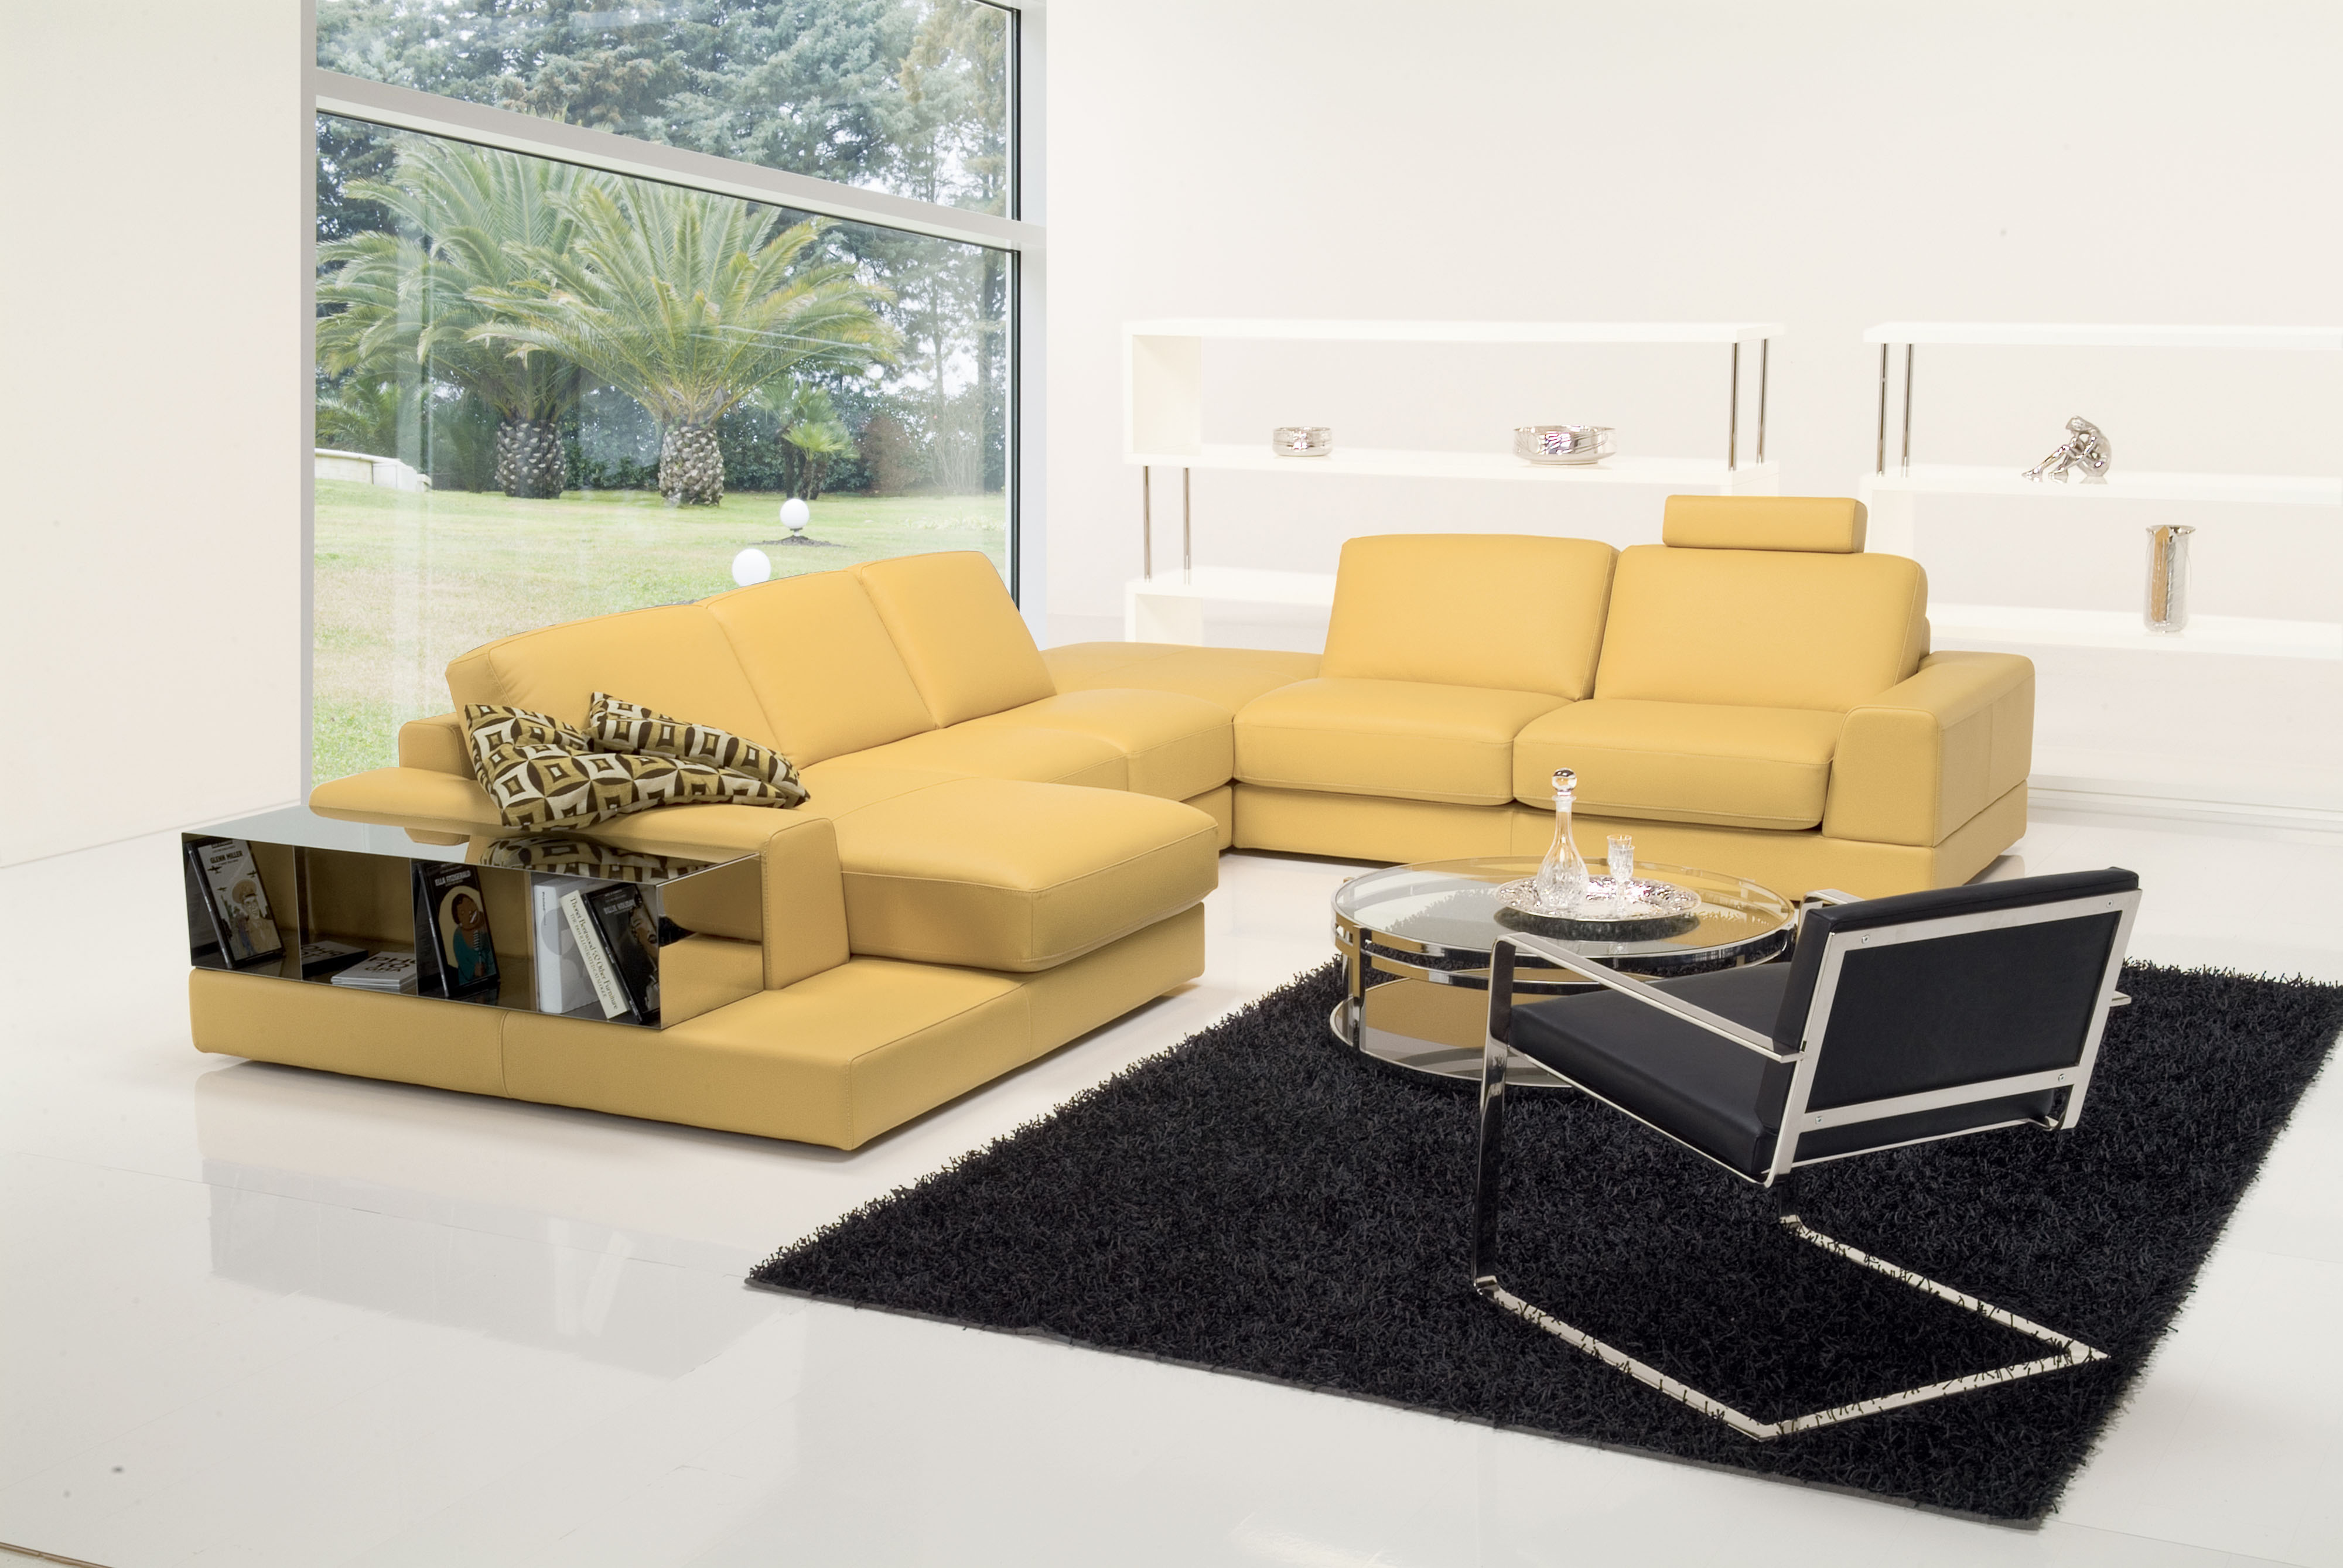 leather corner sofa spain doctor nz fashionable covered in all sectional stockton